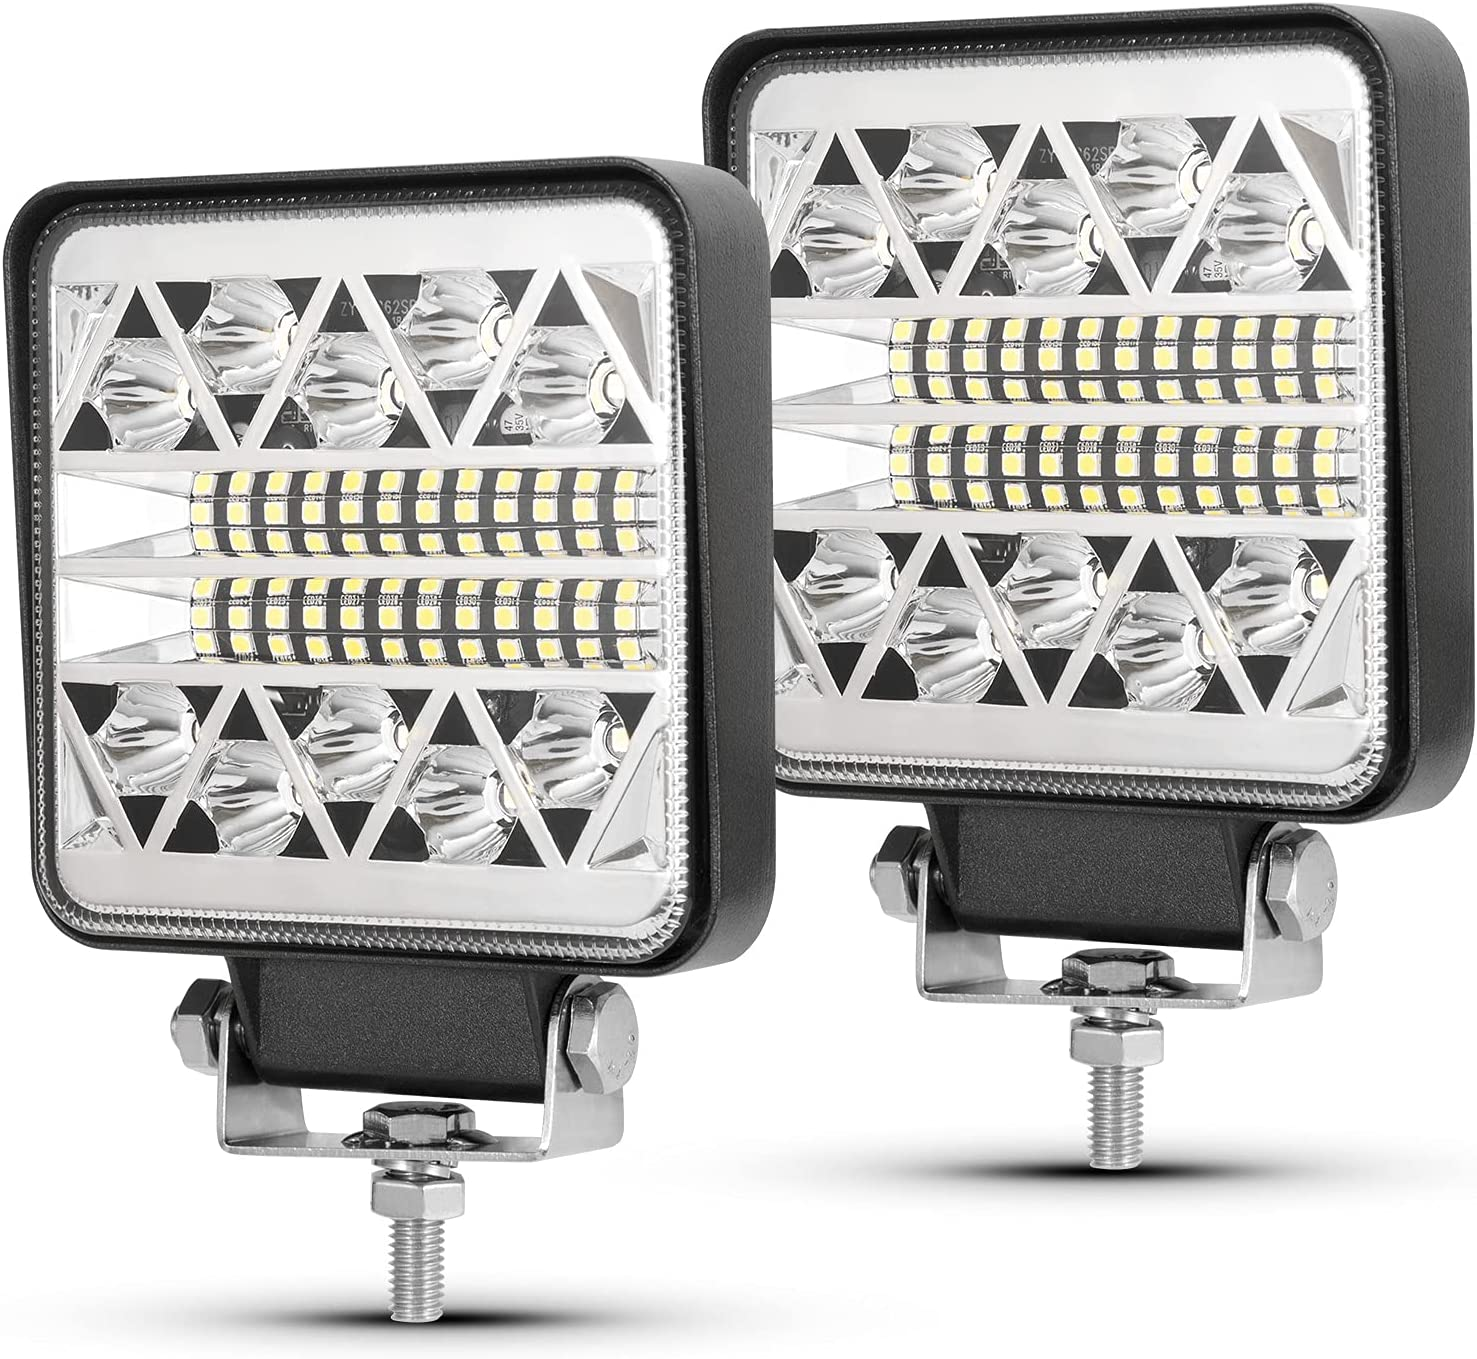 BUNKER INDUST 4 Inch LED Light Pods Max 60% OFF Work Li Max 74% OFF Tractor Pcs 2 Square